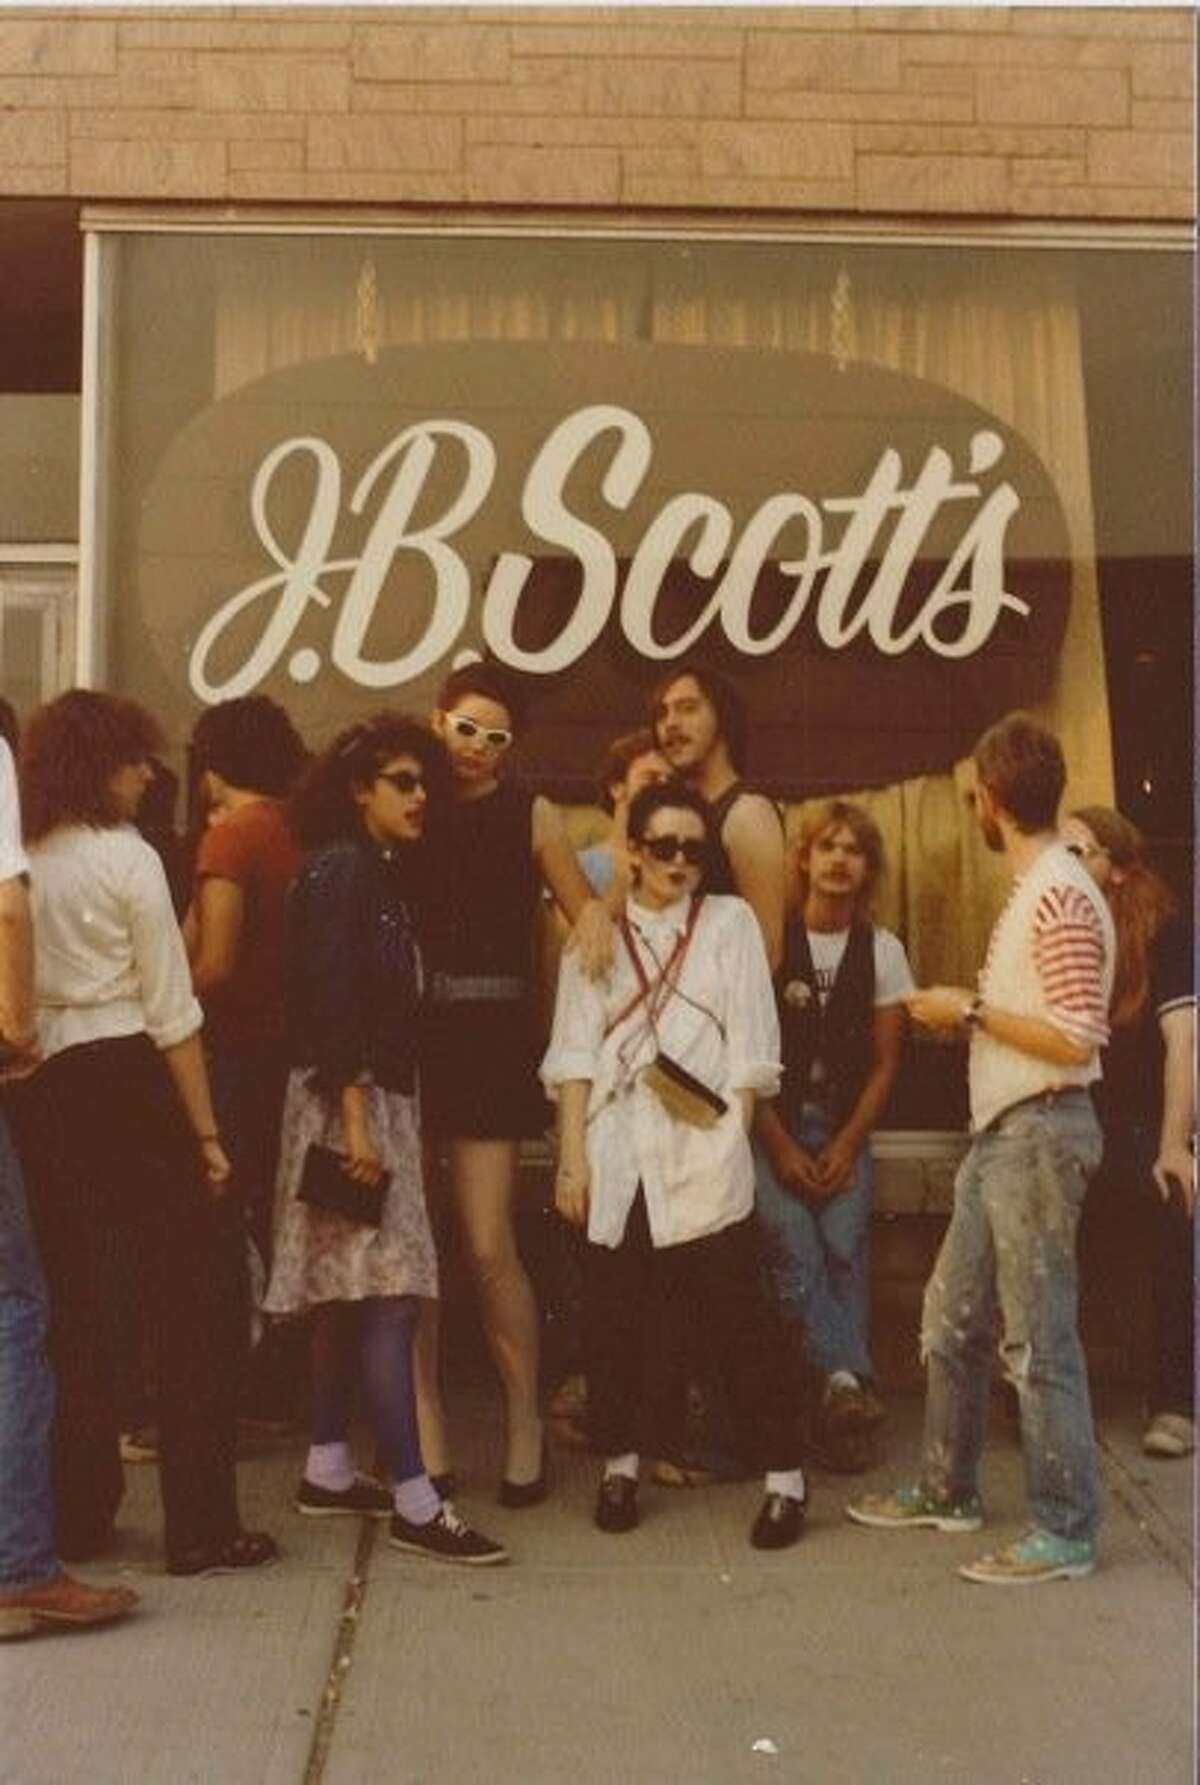 Outside J.B. Scott's in the early 1980s. (Credit Patti Quade)